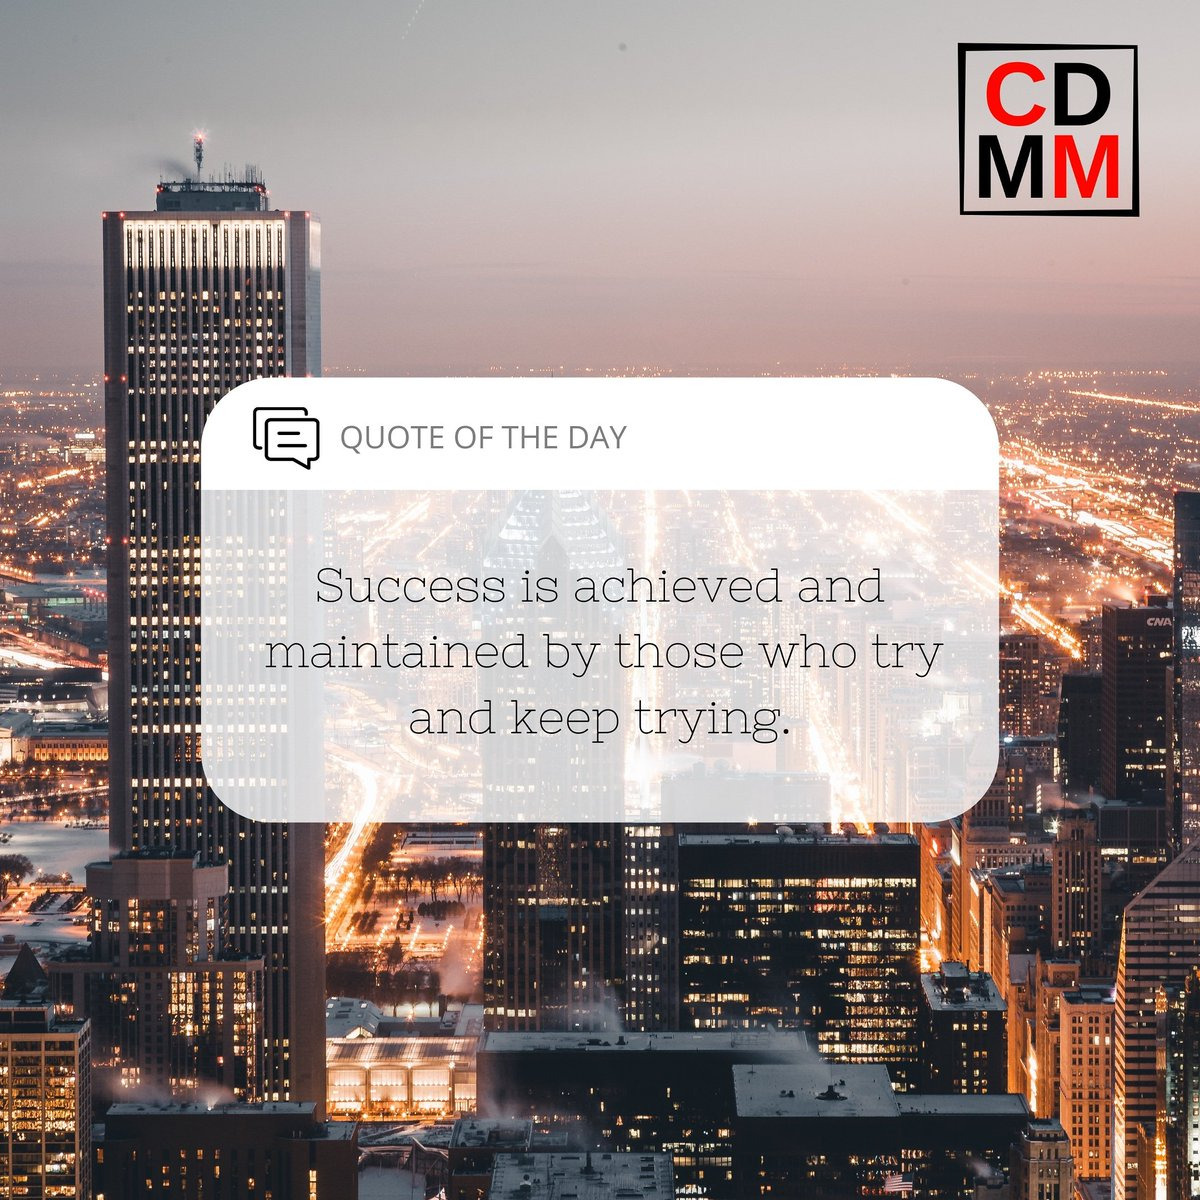 Success is achieved and maintained by those who try and keep trying.  #success #achieve #maintain #successful #keepthriving #keeptrying #try #tryagain #CDMM #chamisadynastymediamoguls #marketing #digitalmarketing #business #online https://t.co/0QtAUIJUQW